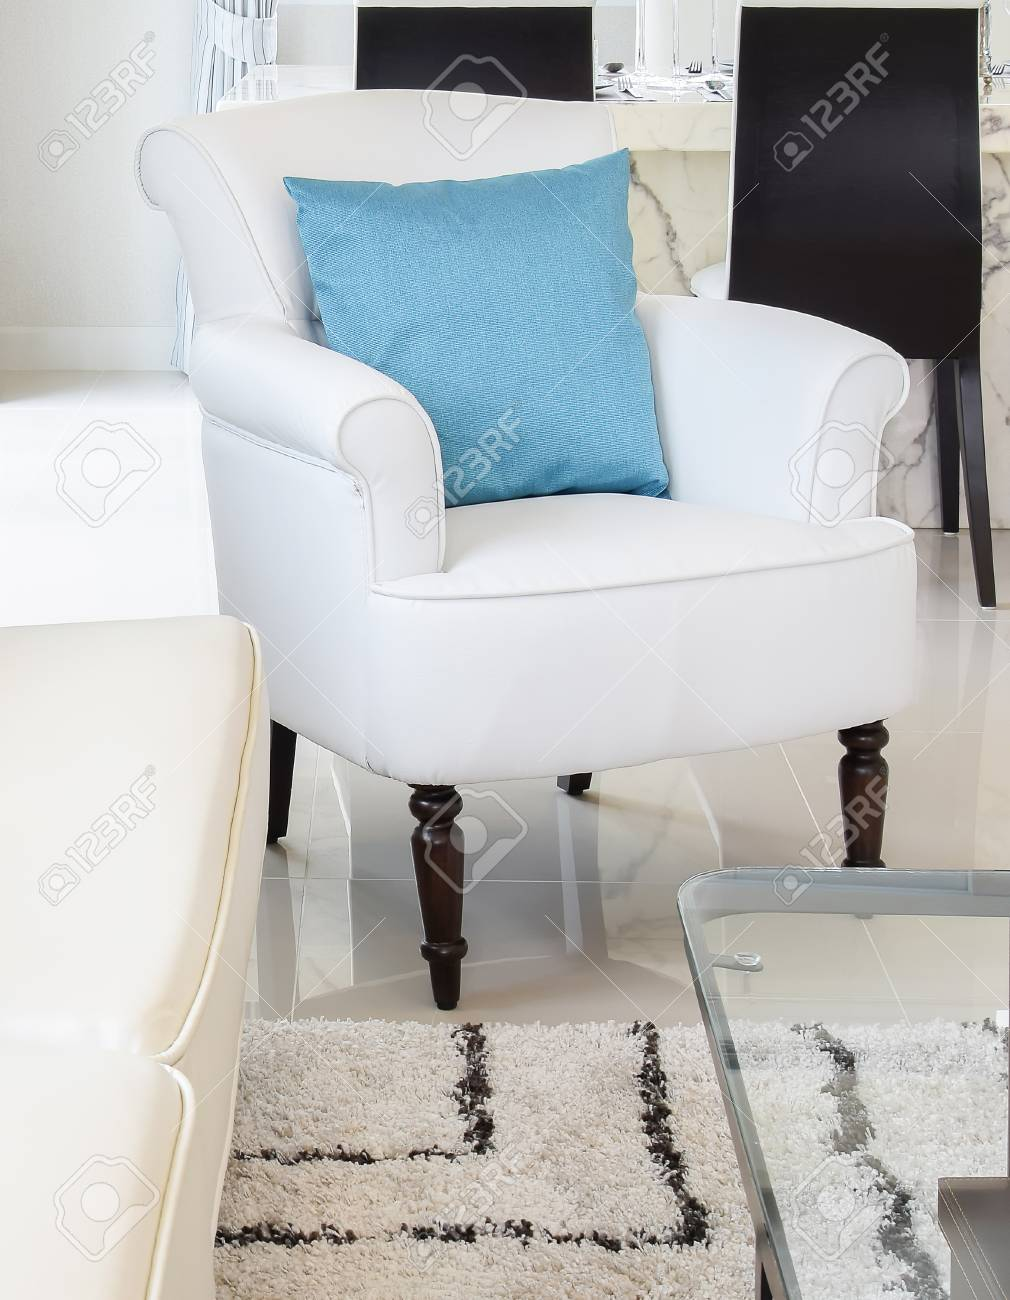 Blue Pillows On A White Leather Couch In Vintage Living Room Stock